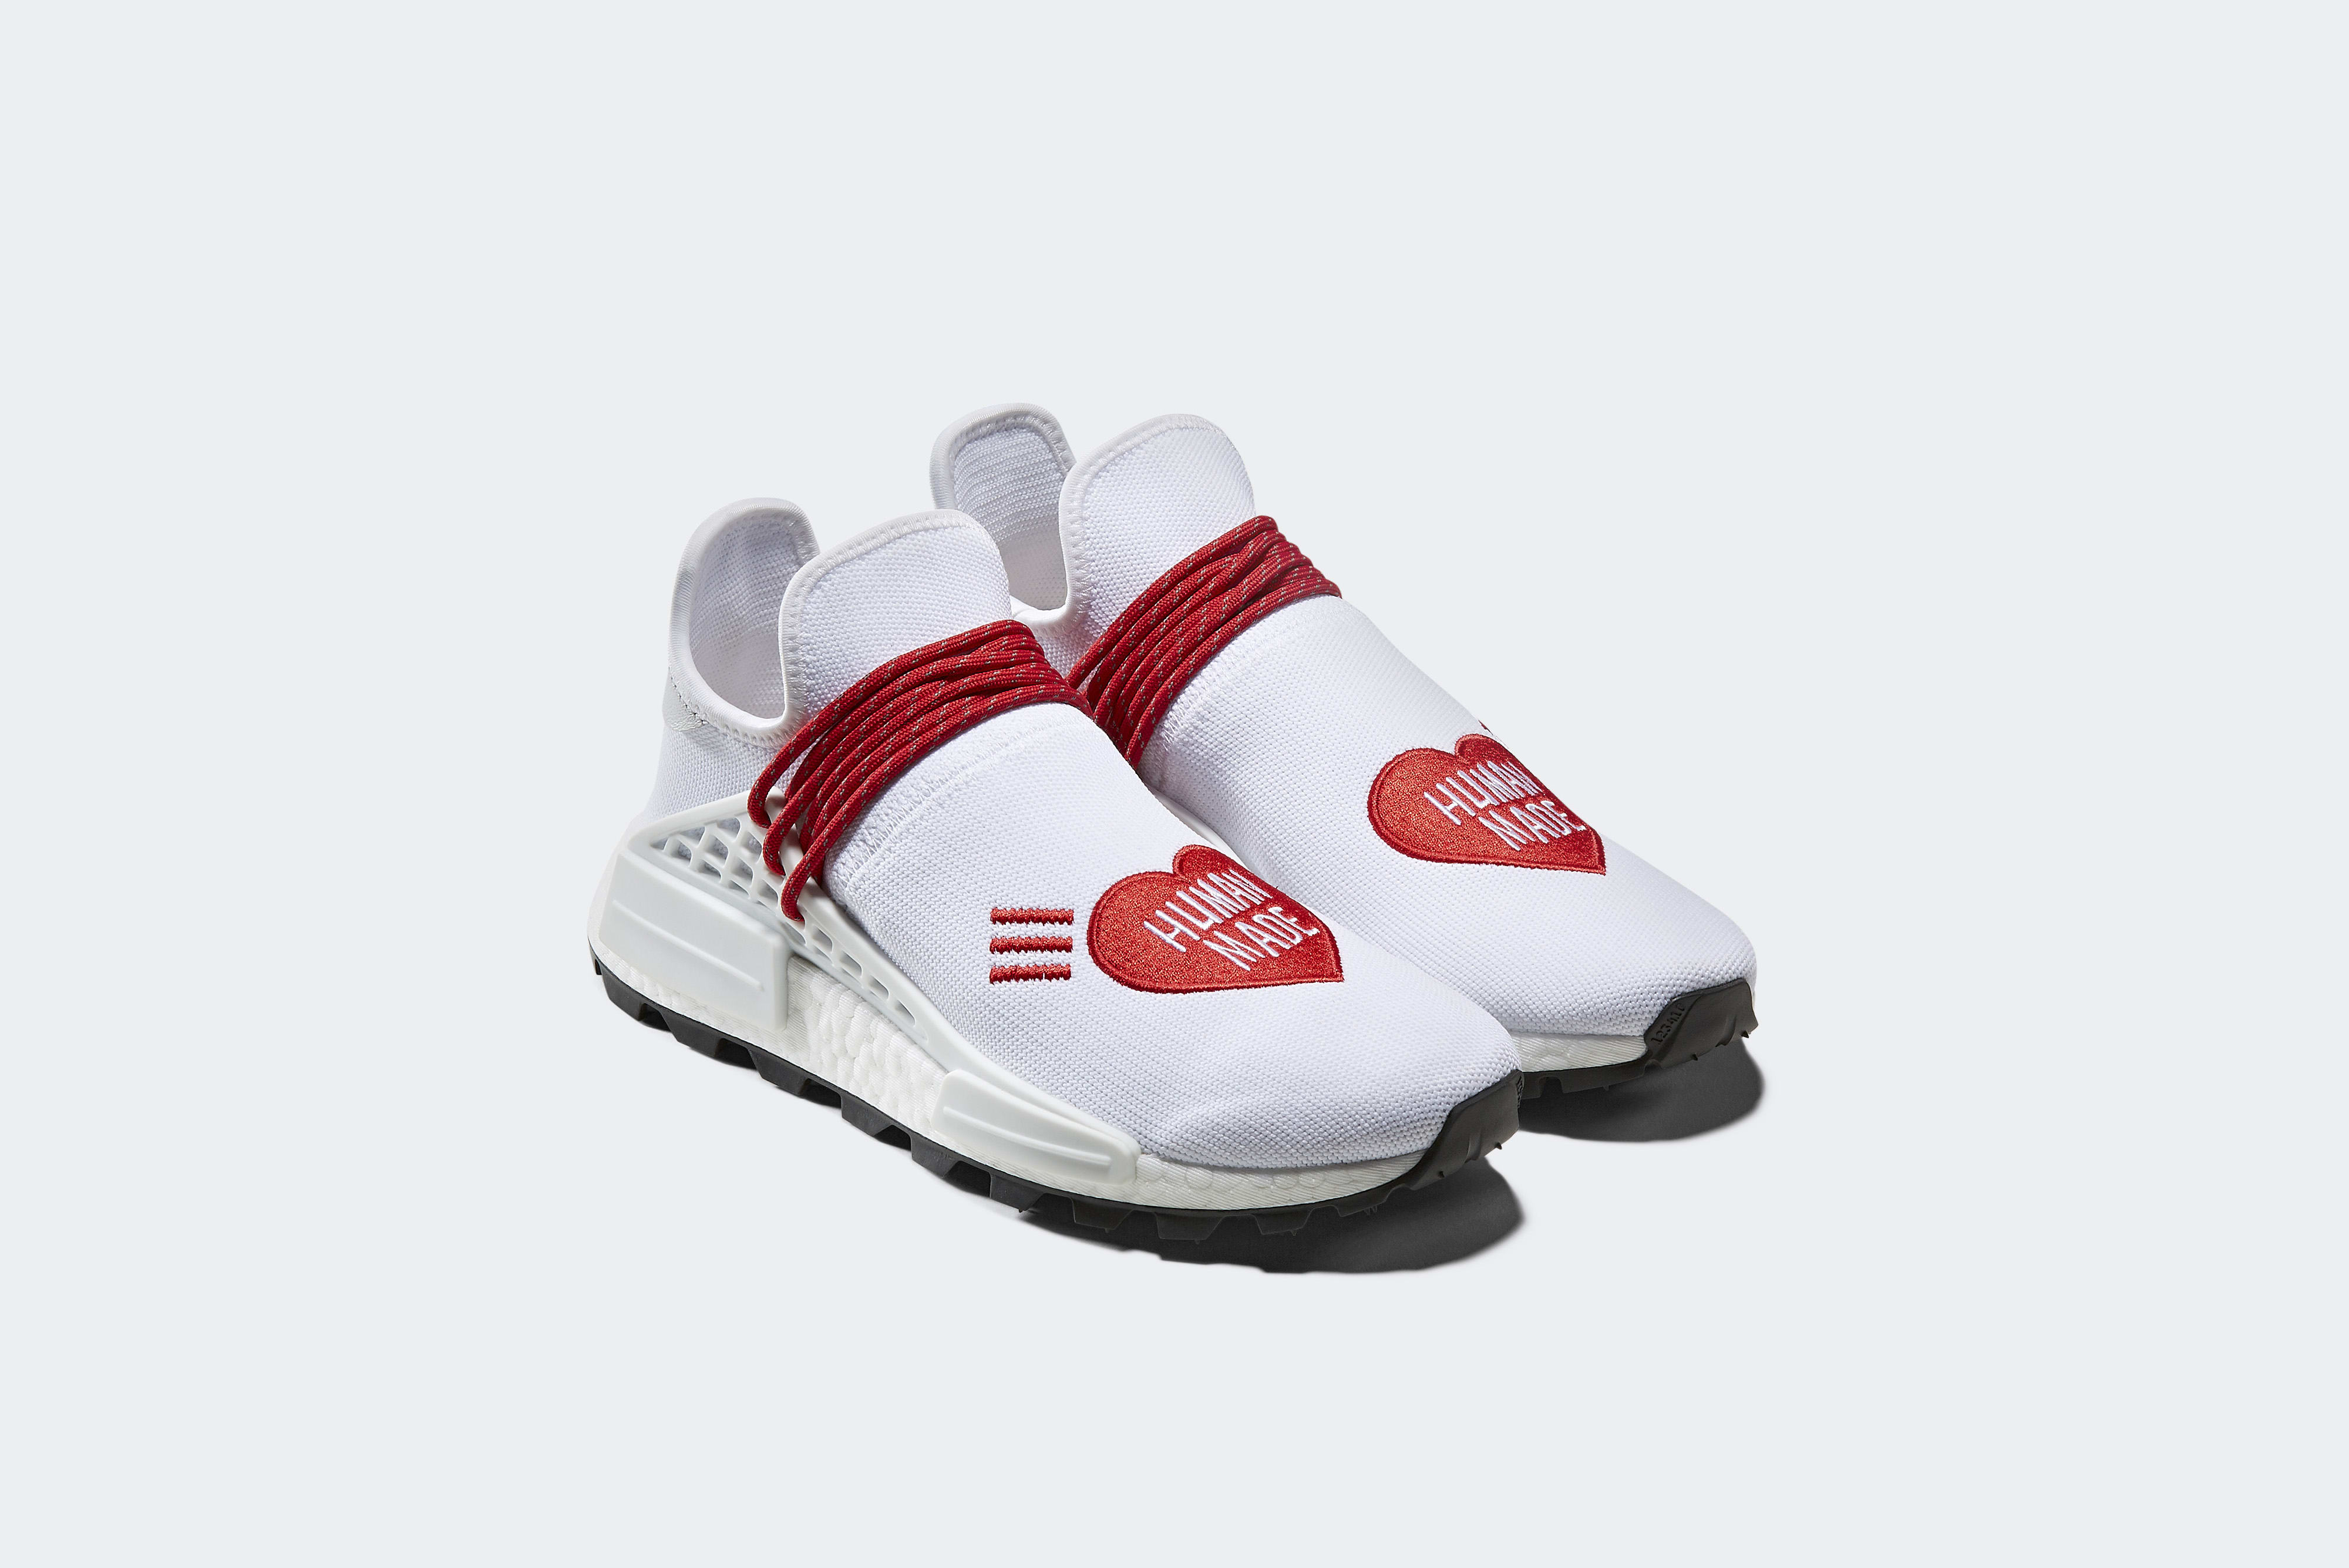 amante Accor Agresivo  END. Features | adidas x Pharrell Williams x Human Made - Register Now on  END. Launches